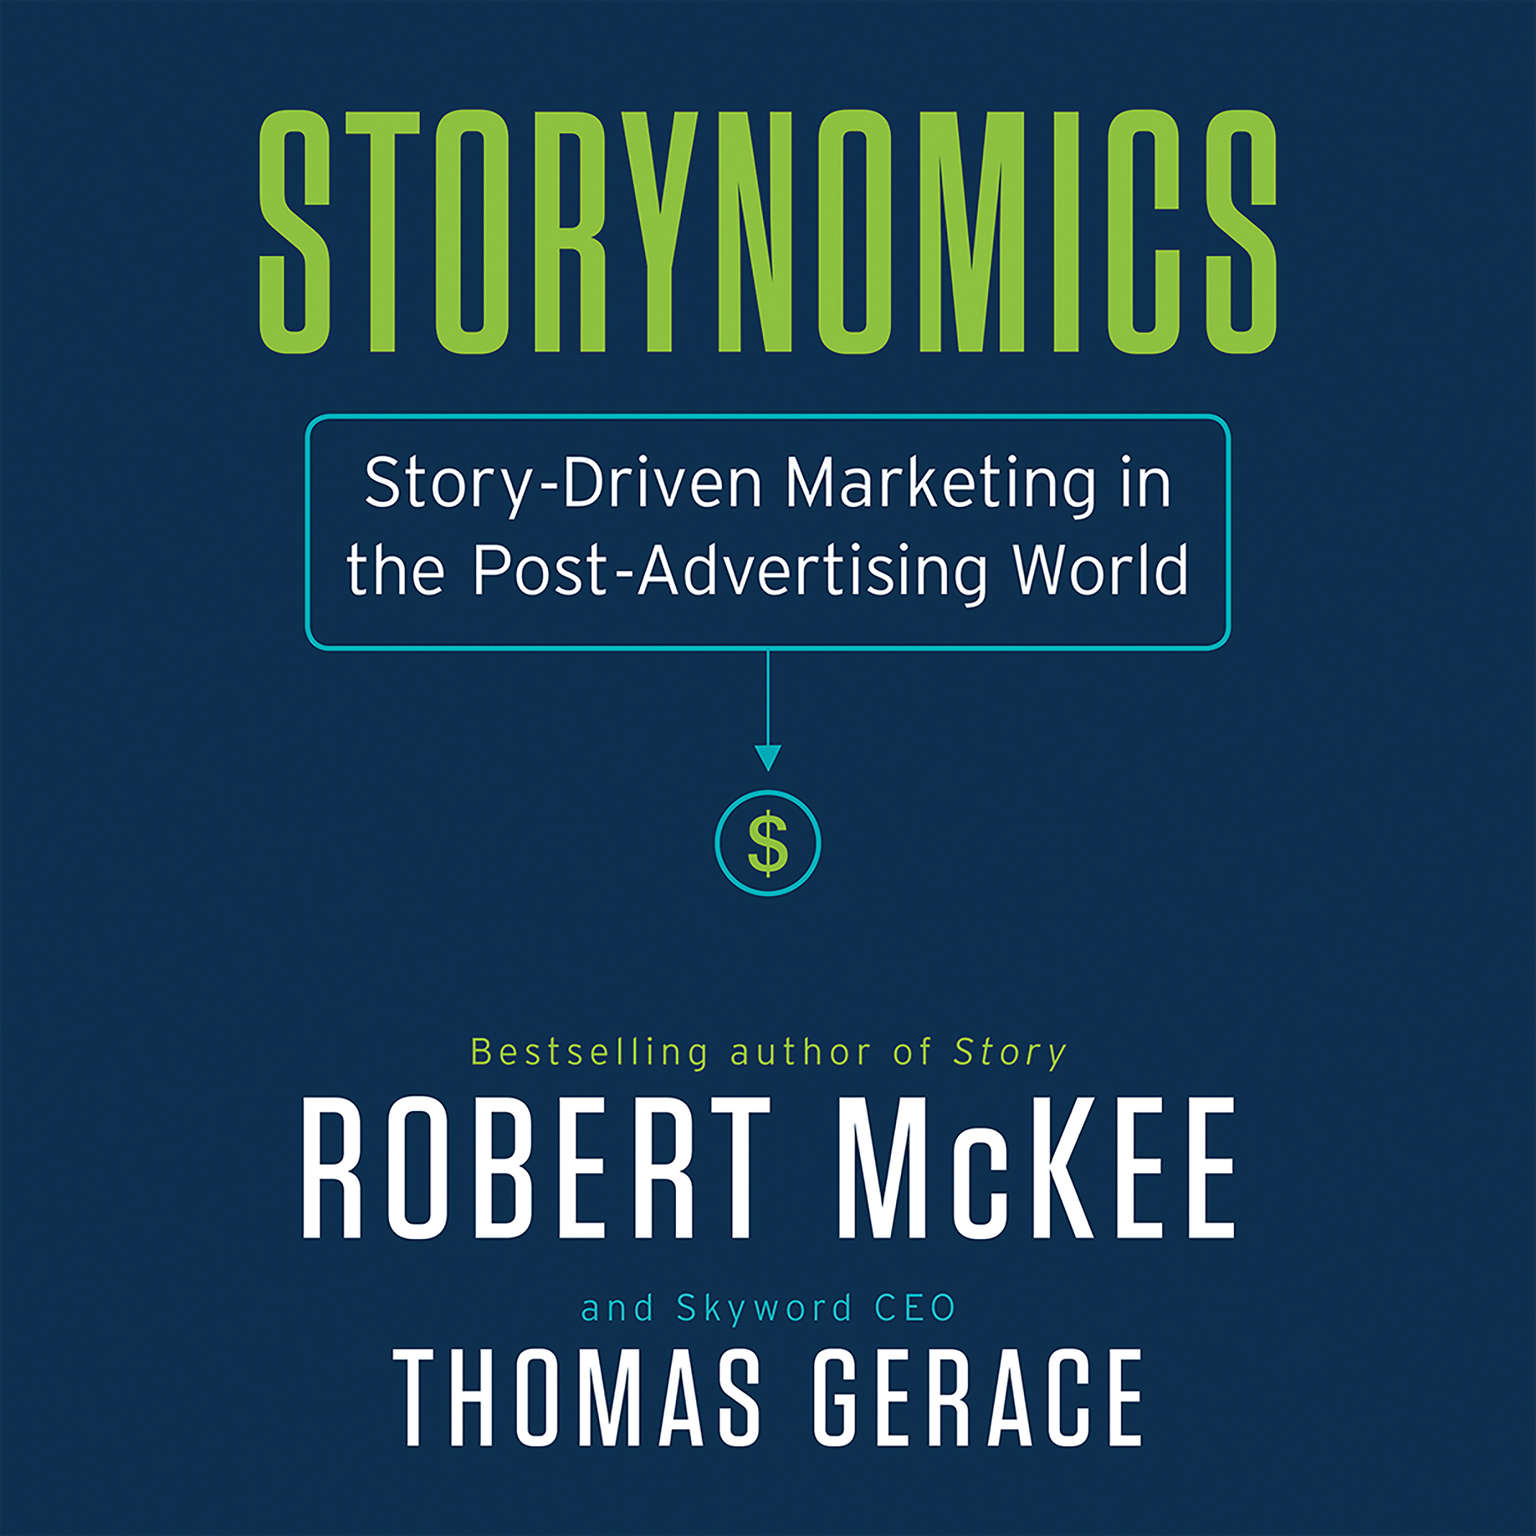 Storynomics: Story-Driven Marketing in the Post-Advertising World Audiobook, by Robert McKee